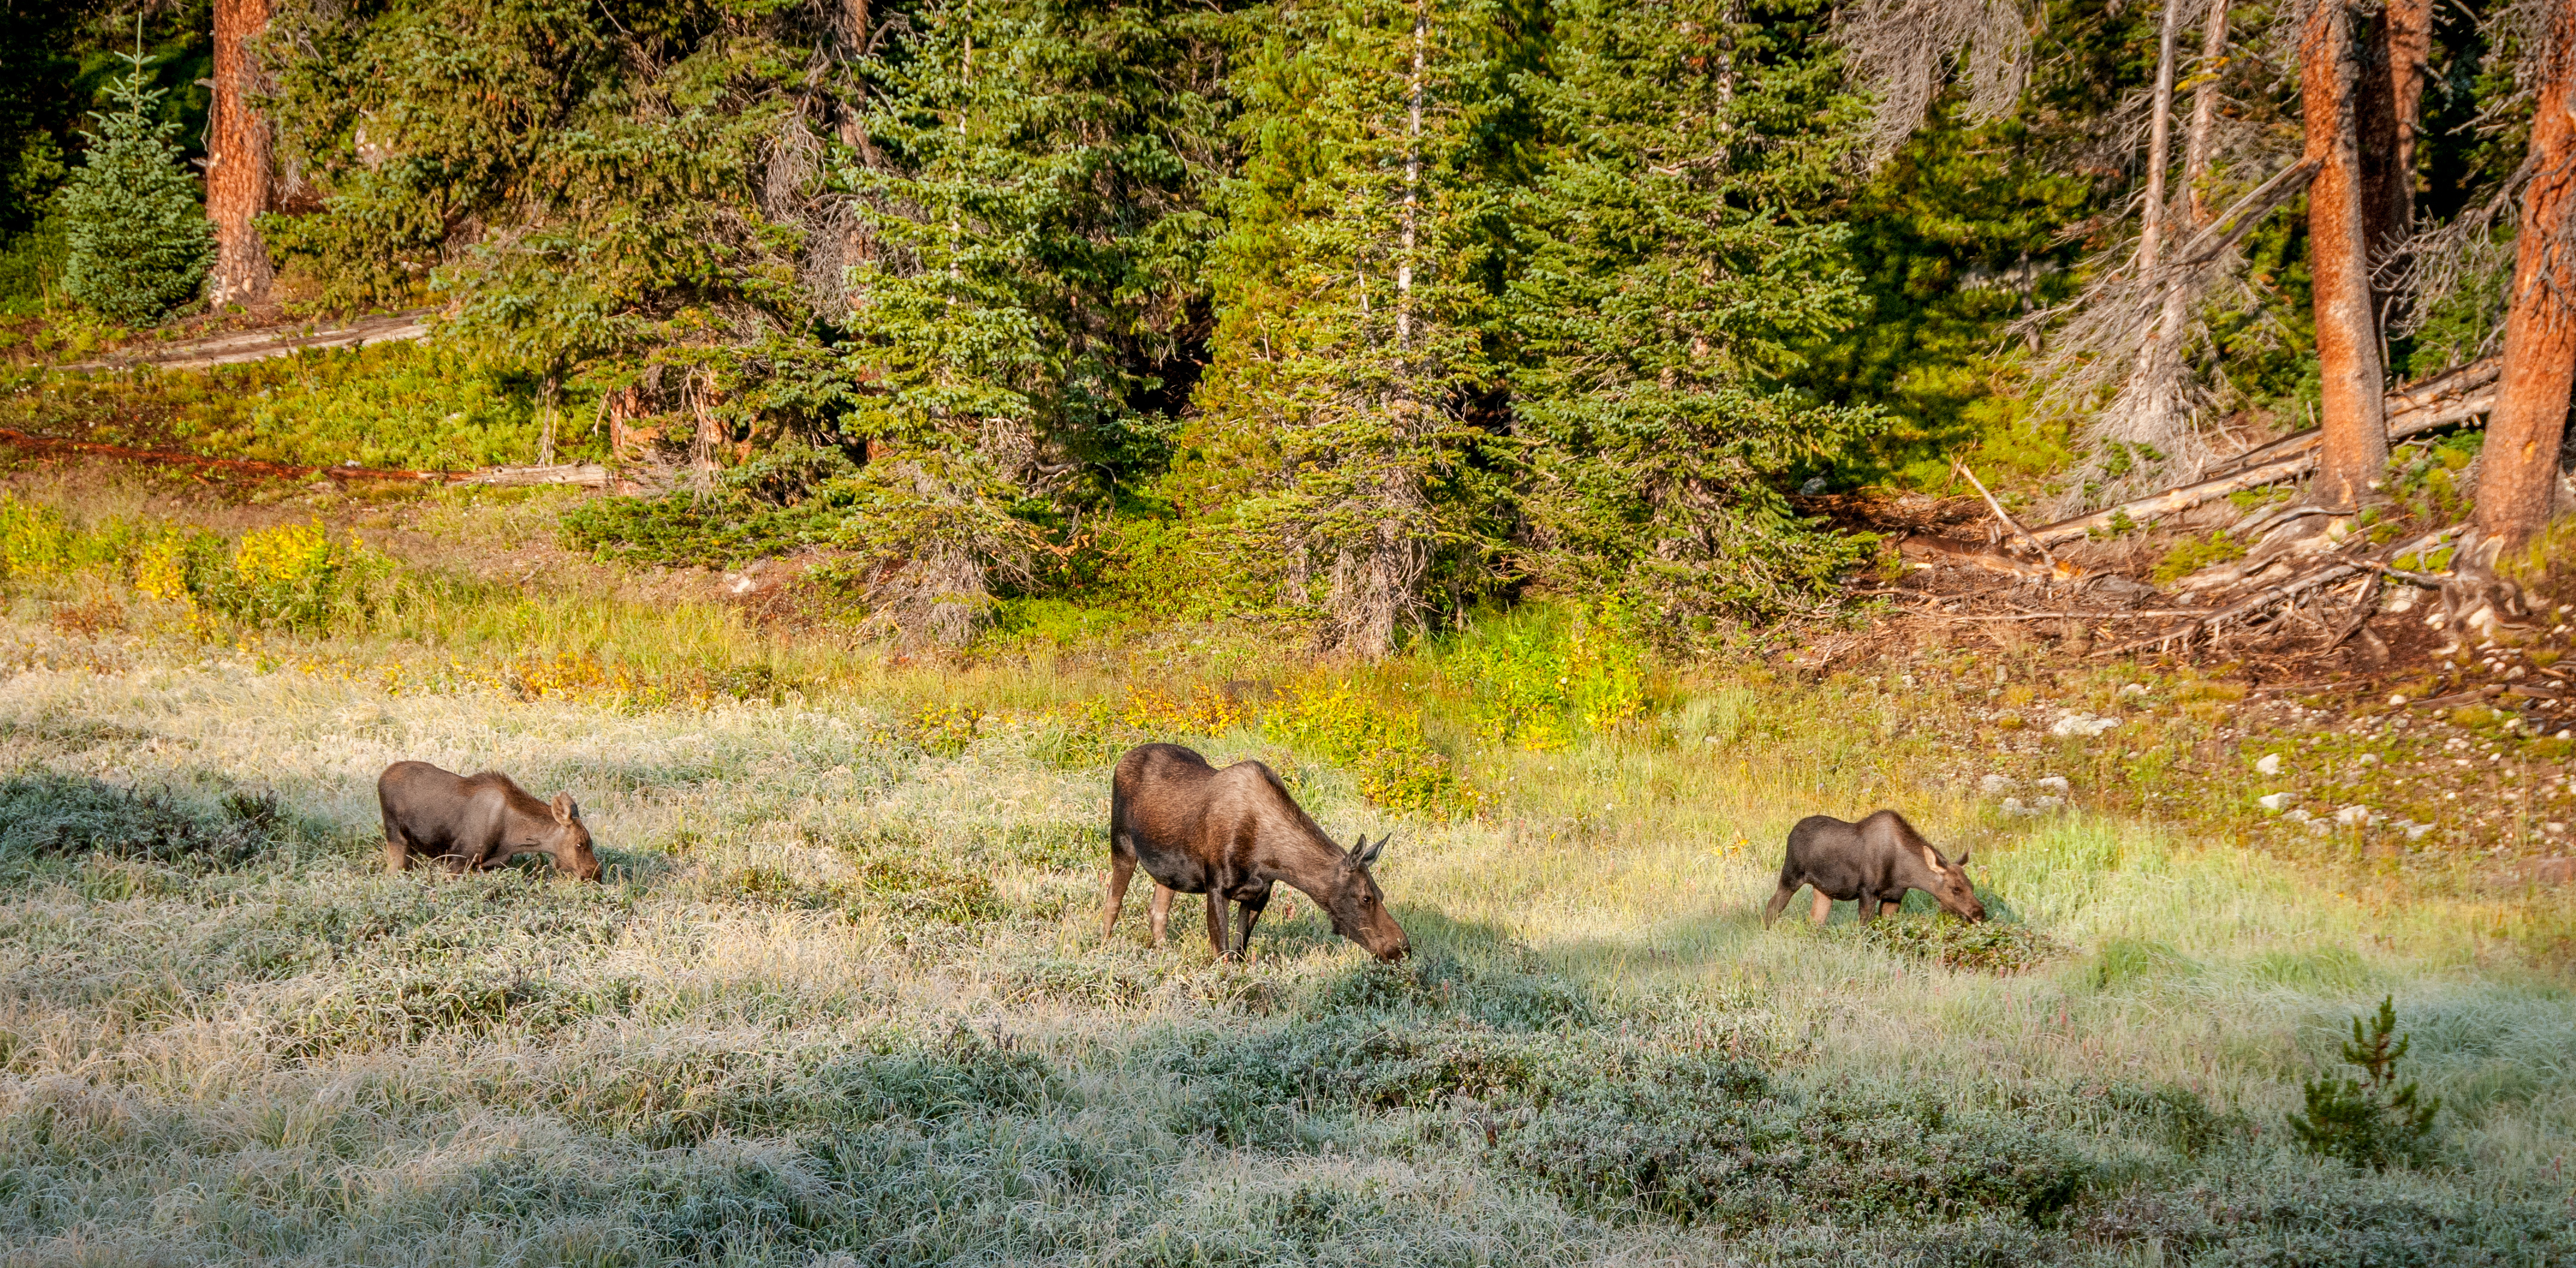 Group of moose on the move